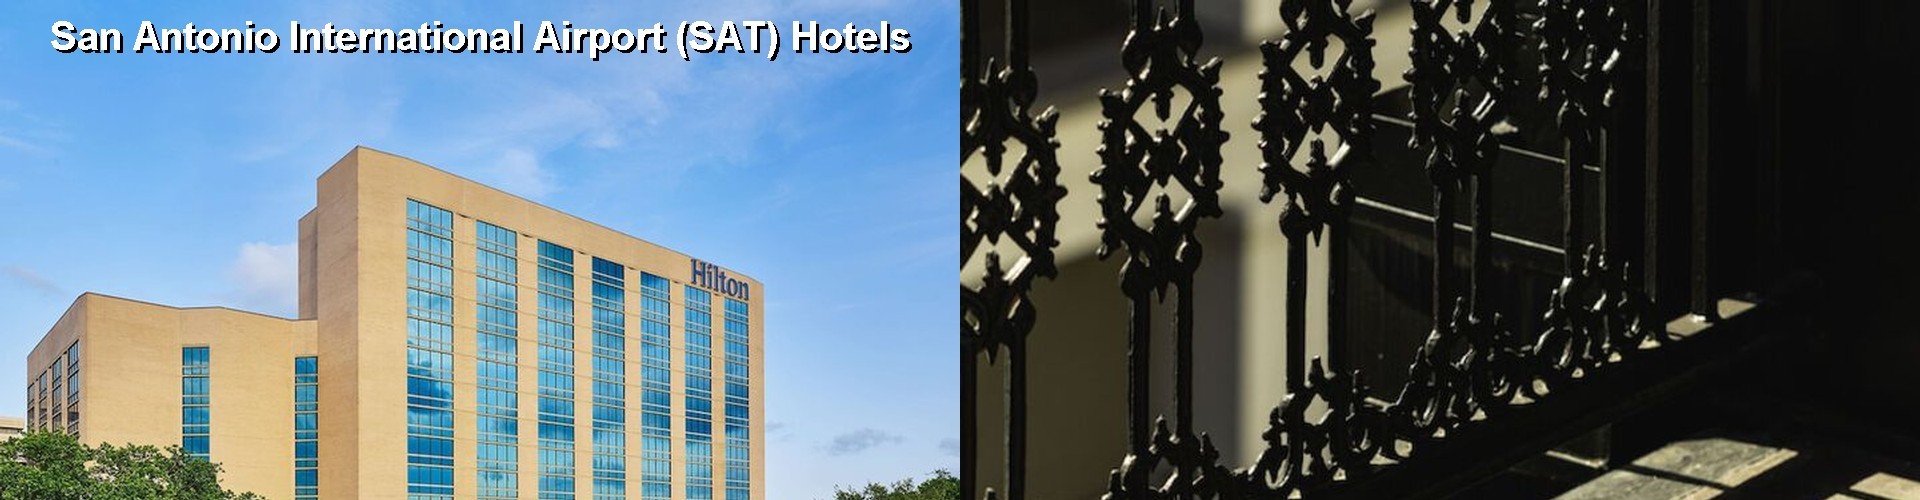 5 Best Hotels Near San Antonio International Airport Sat